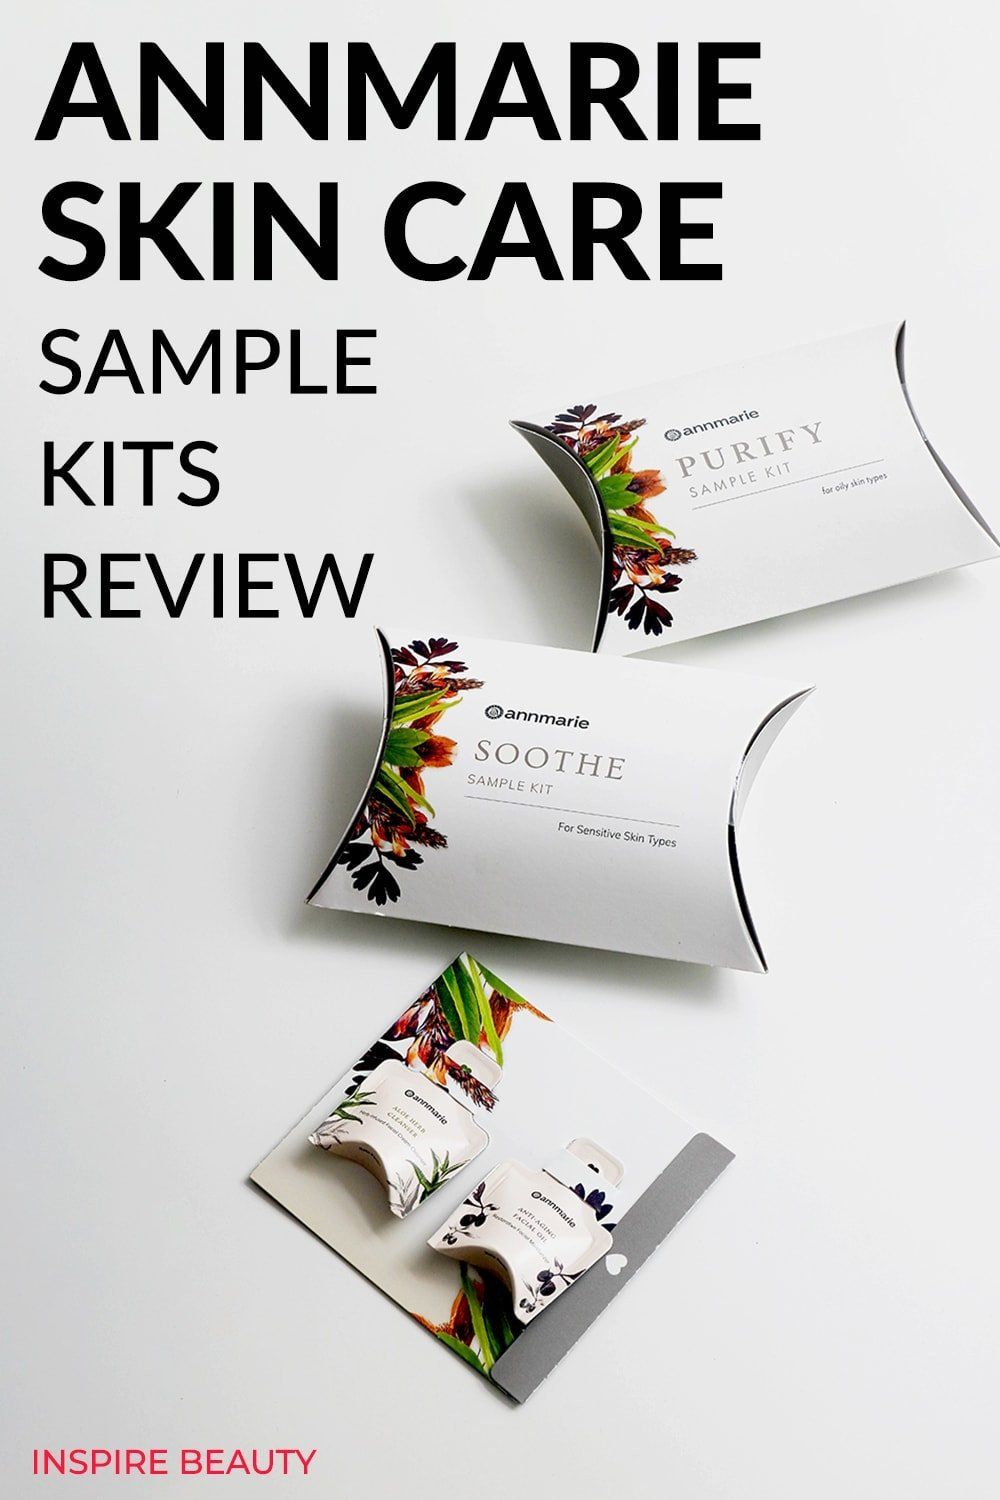 Annmarie Skin Care Sample Kits reviews of Purify, Balance, Soothe and Restore Sample Kits